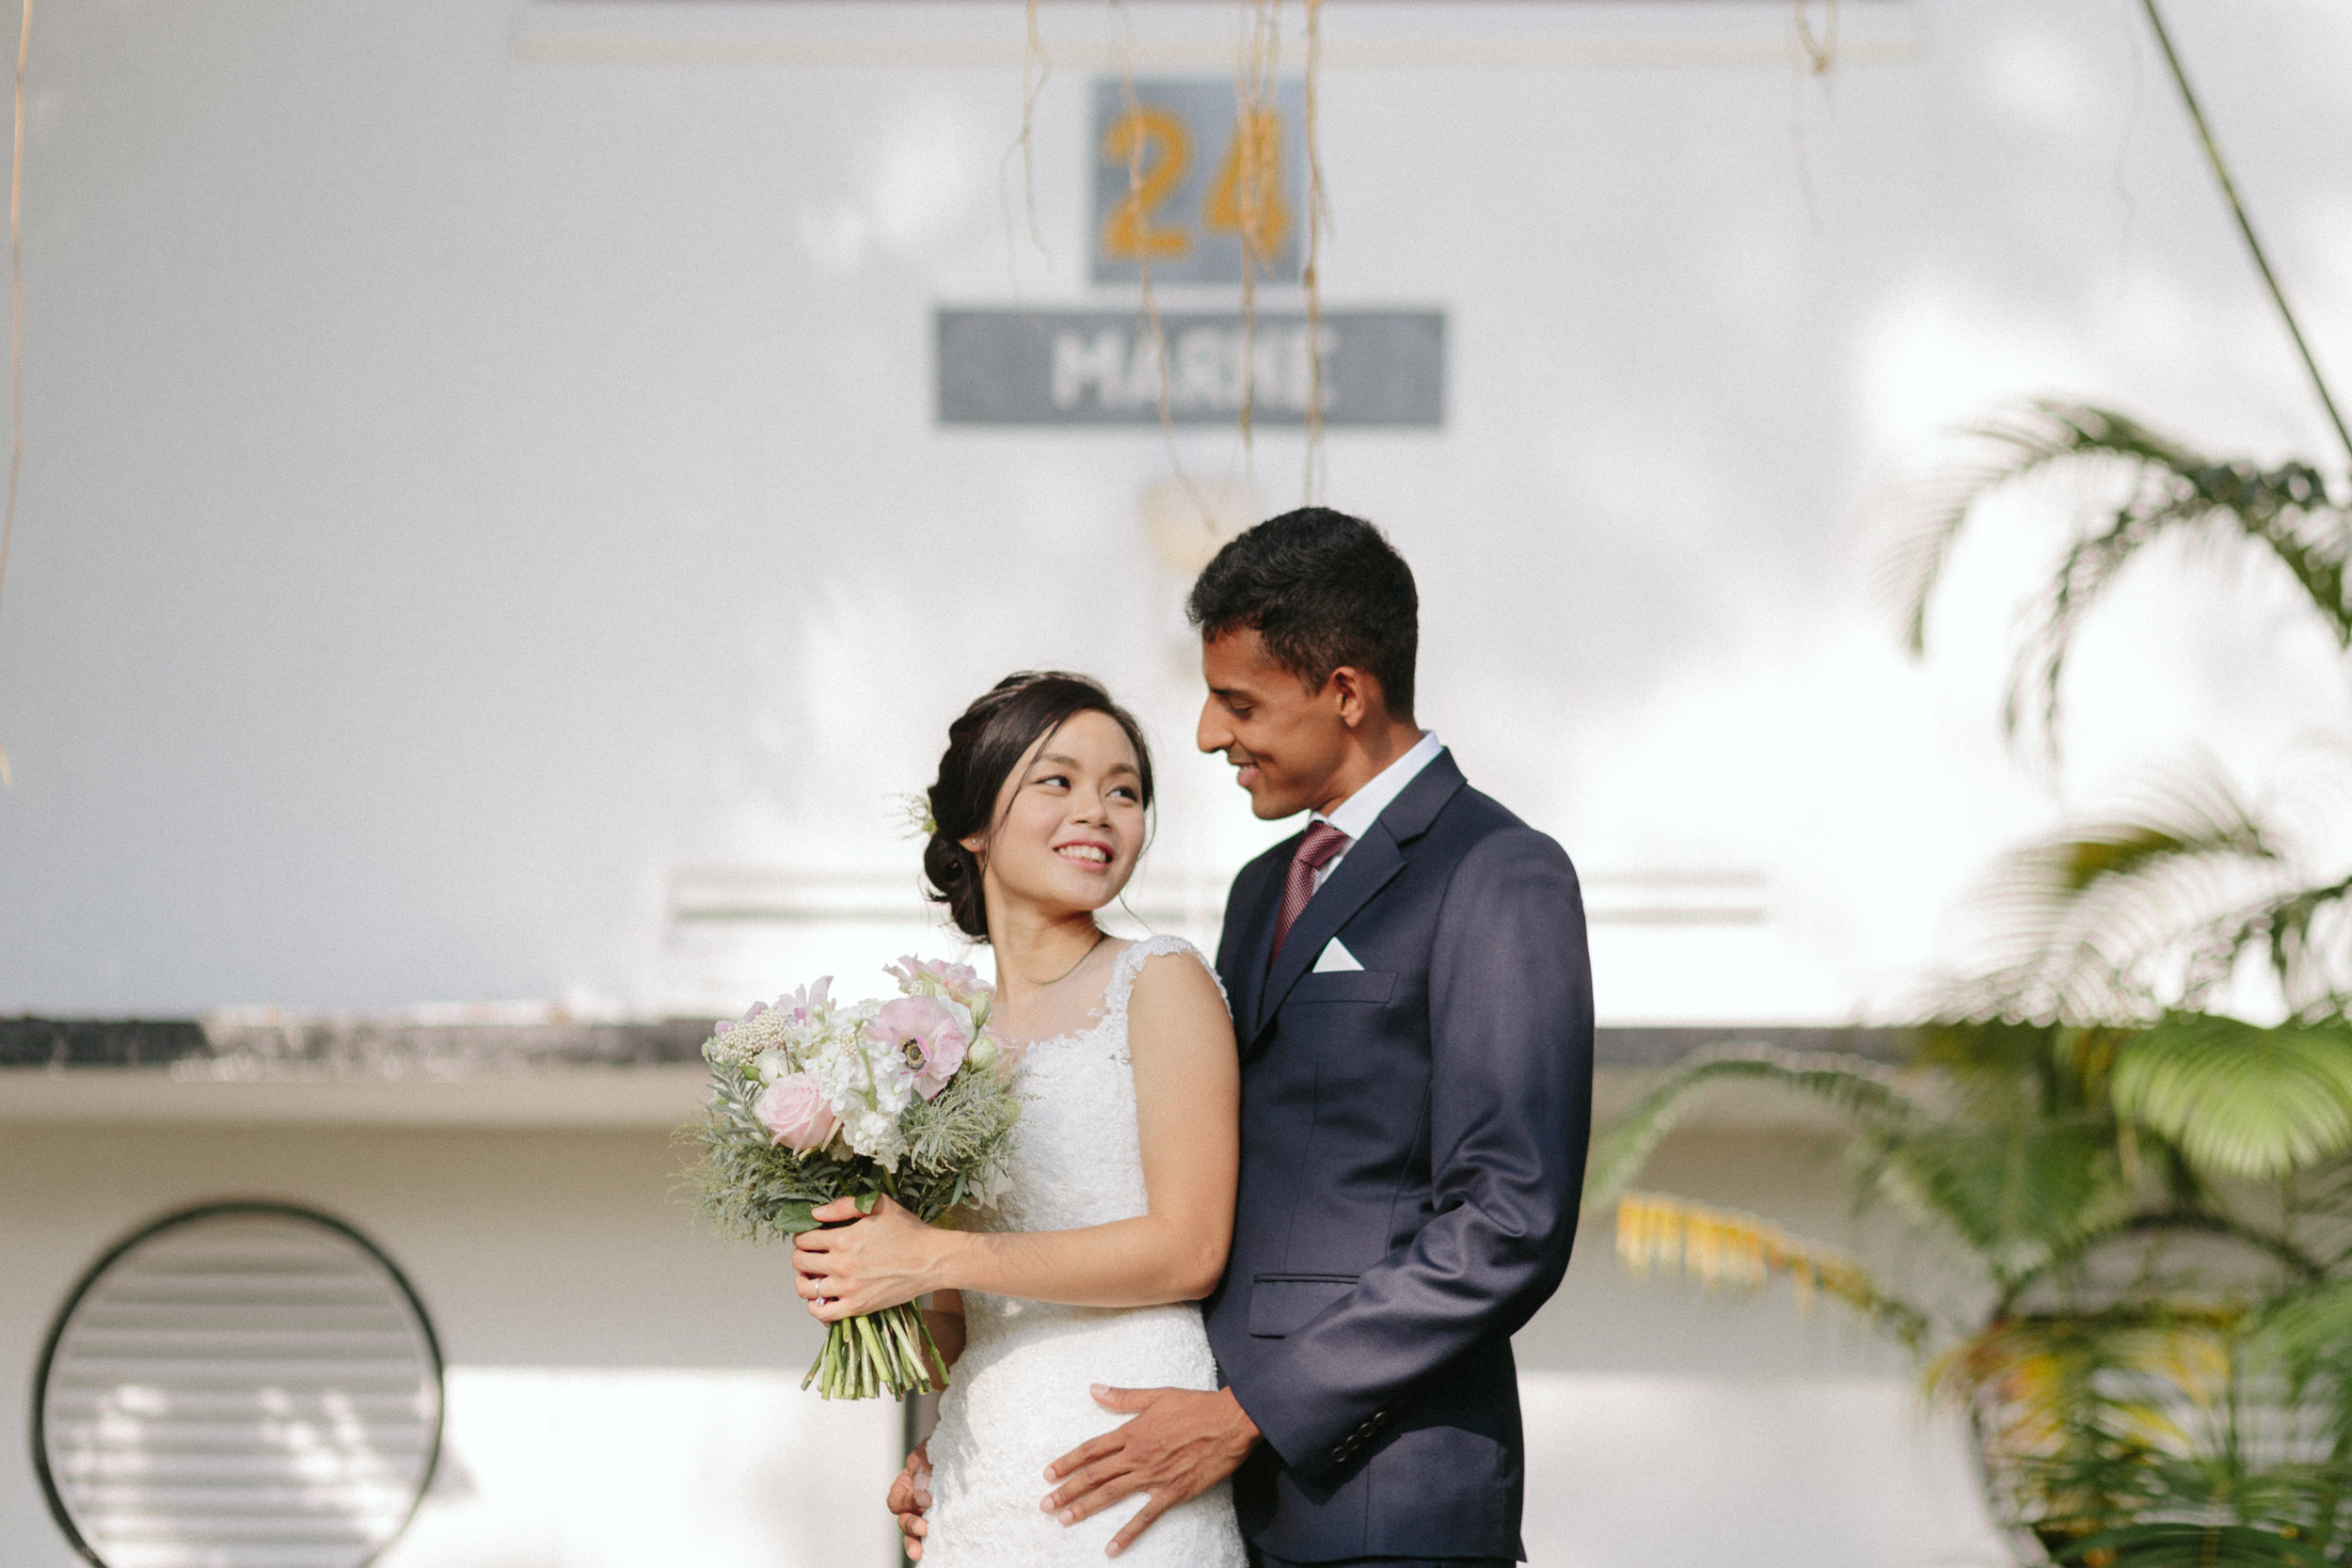 singapore-wedding-photographer-wemadethese-suriya-xinqi-10.jpg